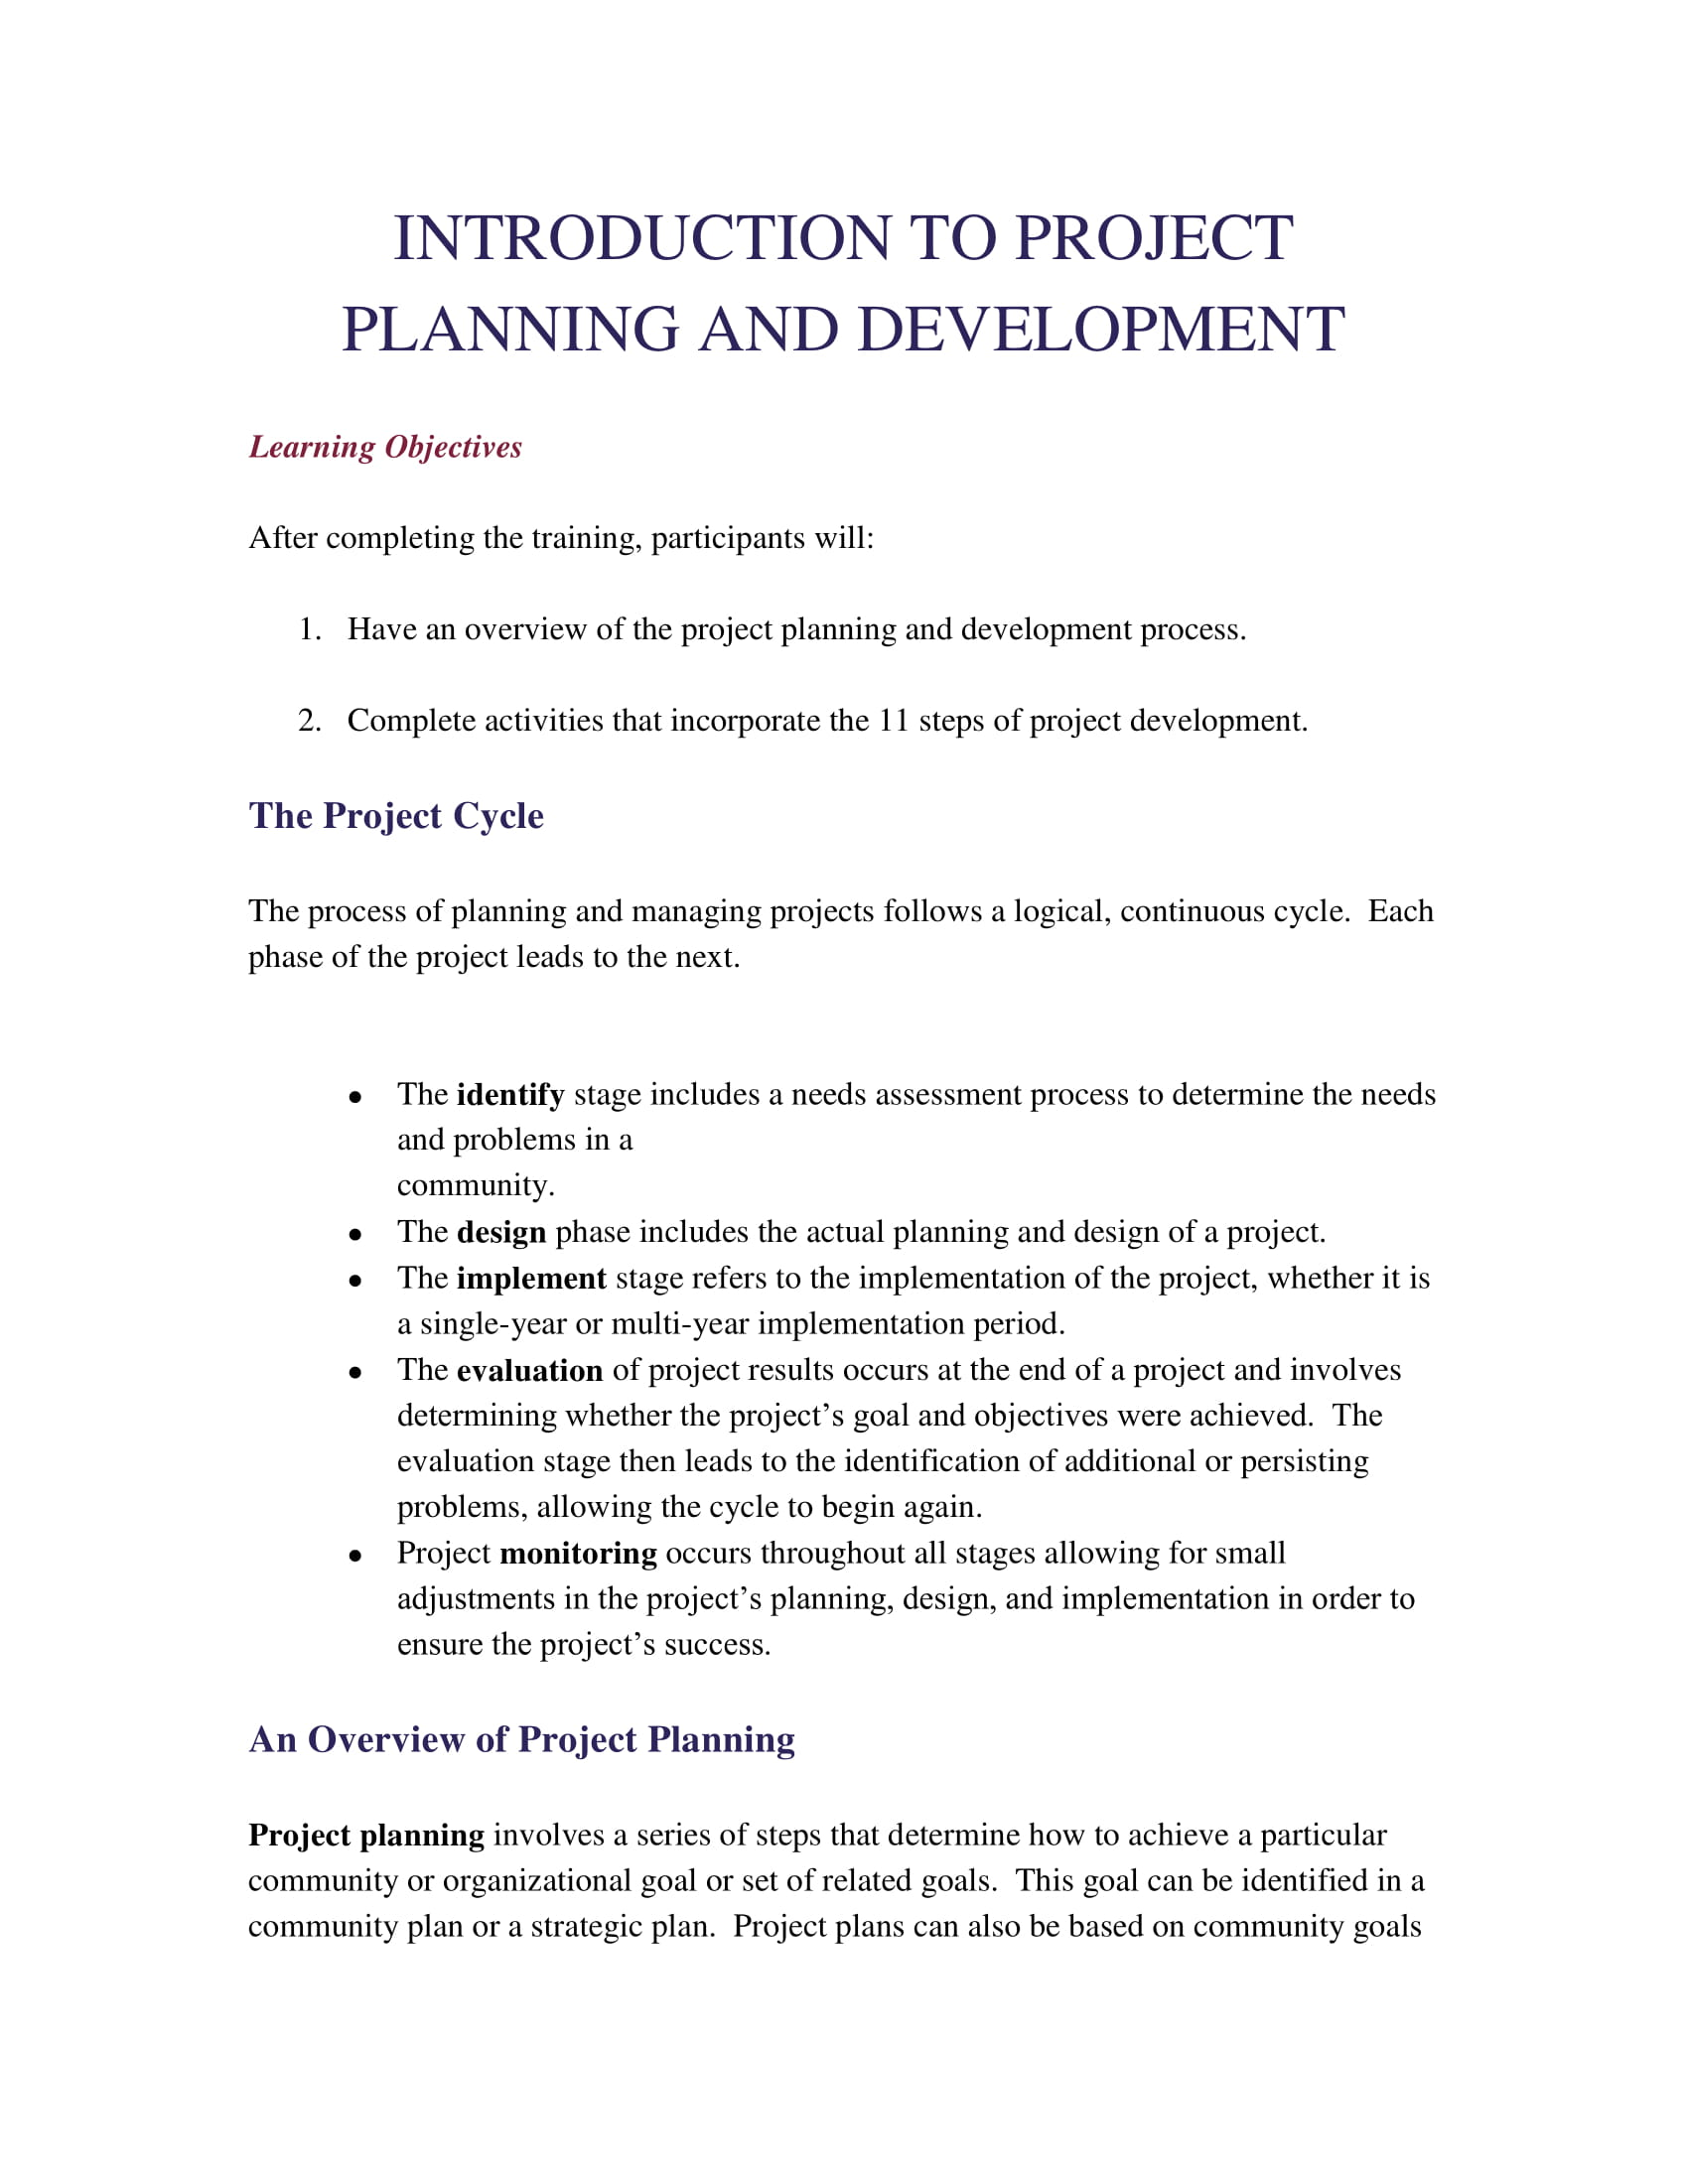 project action planning and development example 01